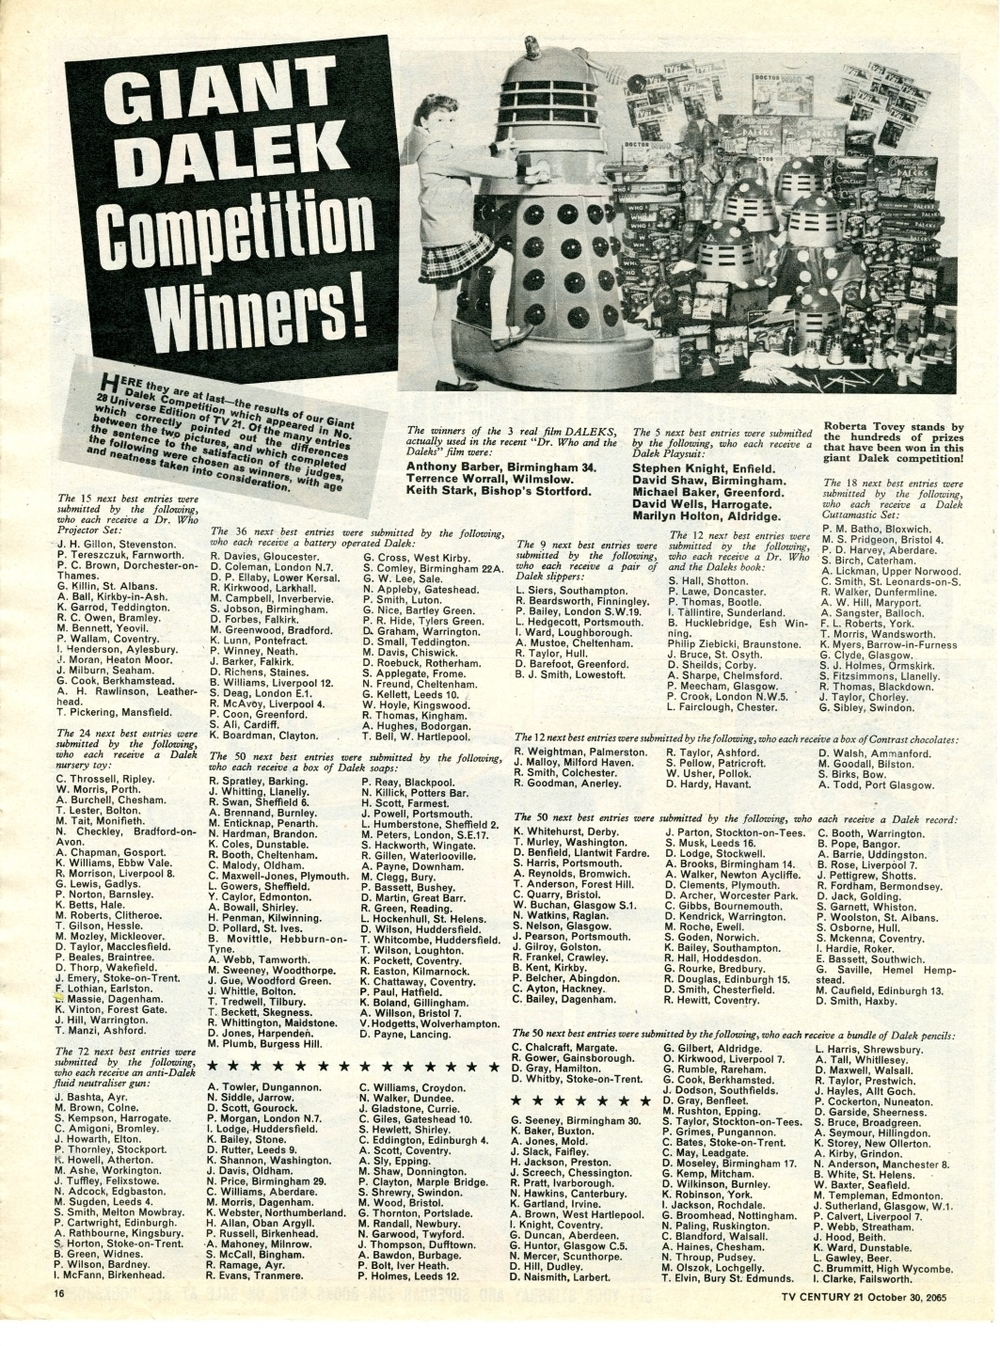 TV Century 21 no. 41, Dalek Competition Winners, 30 October 2065 (1965)